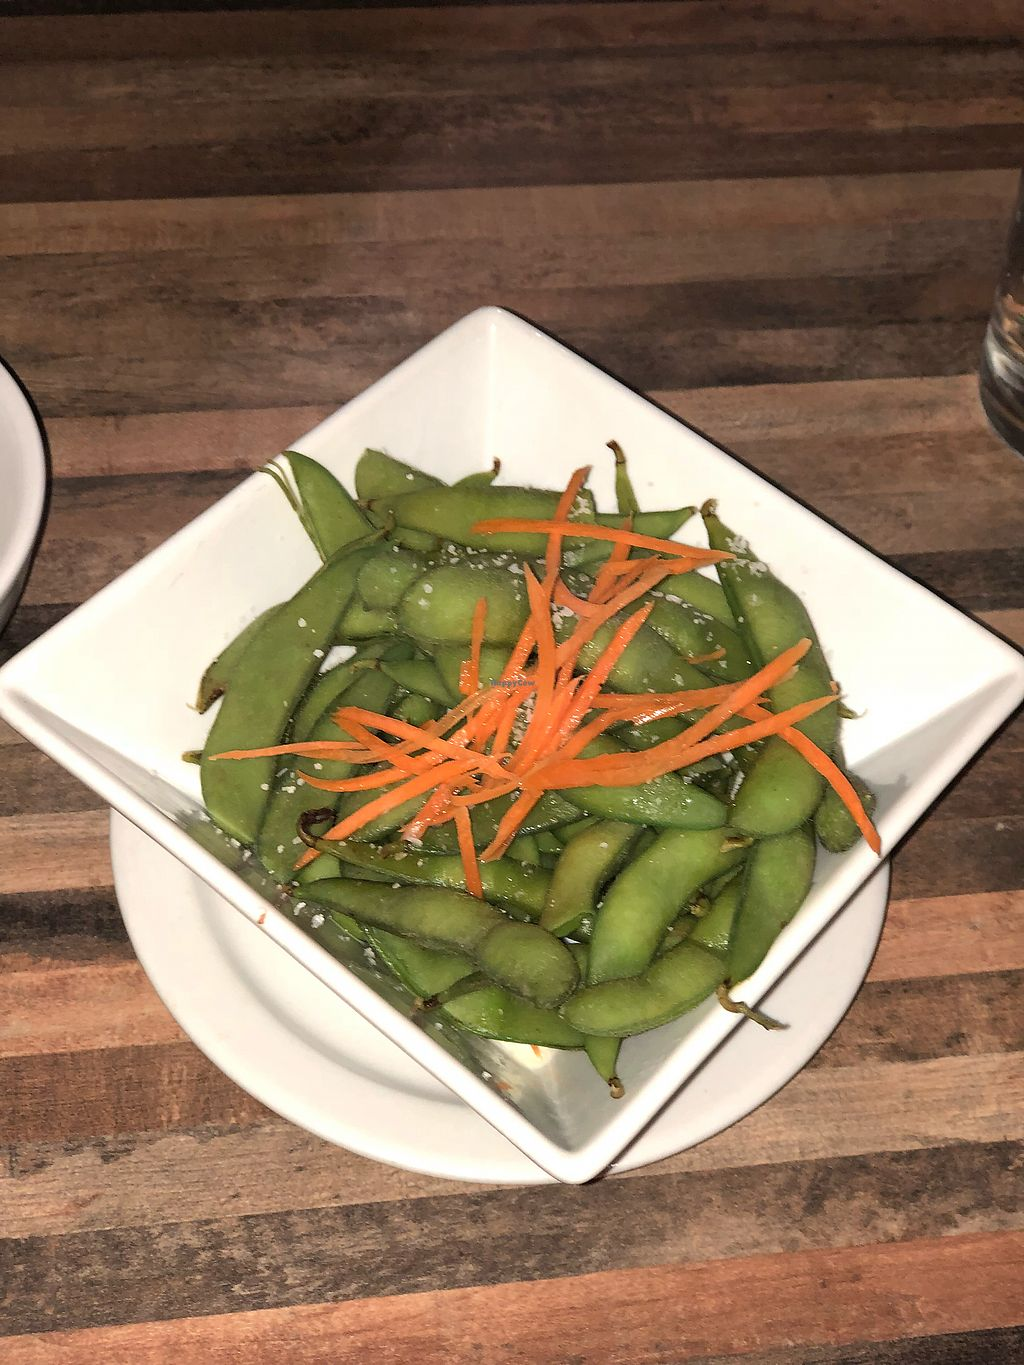 """Photo of JP Thailand Express  by <a href=""""/members/profile/MutatedAlias"""">MutatedAlias</a> <br/>Edamame  <br/> March 17, 2018  - <a href='/contact/abuse/image/105853/371684'>Report</a>"""